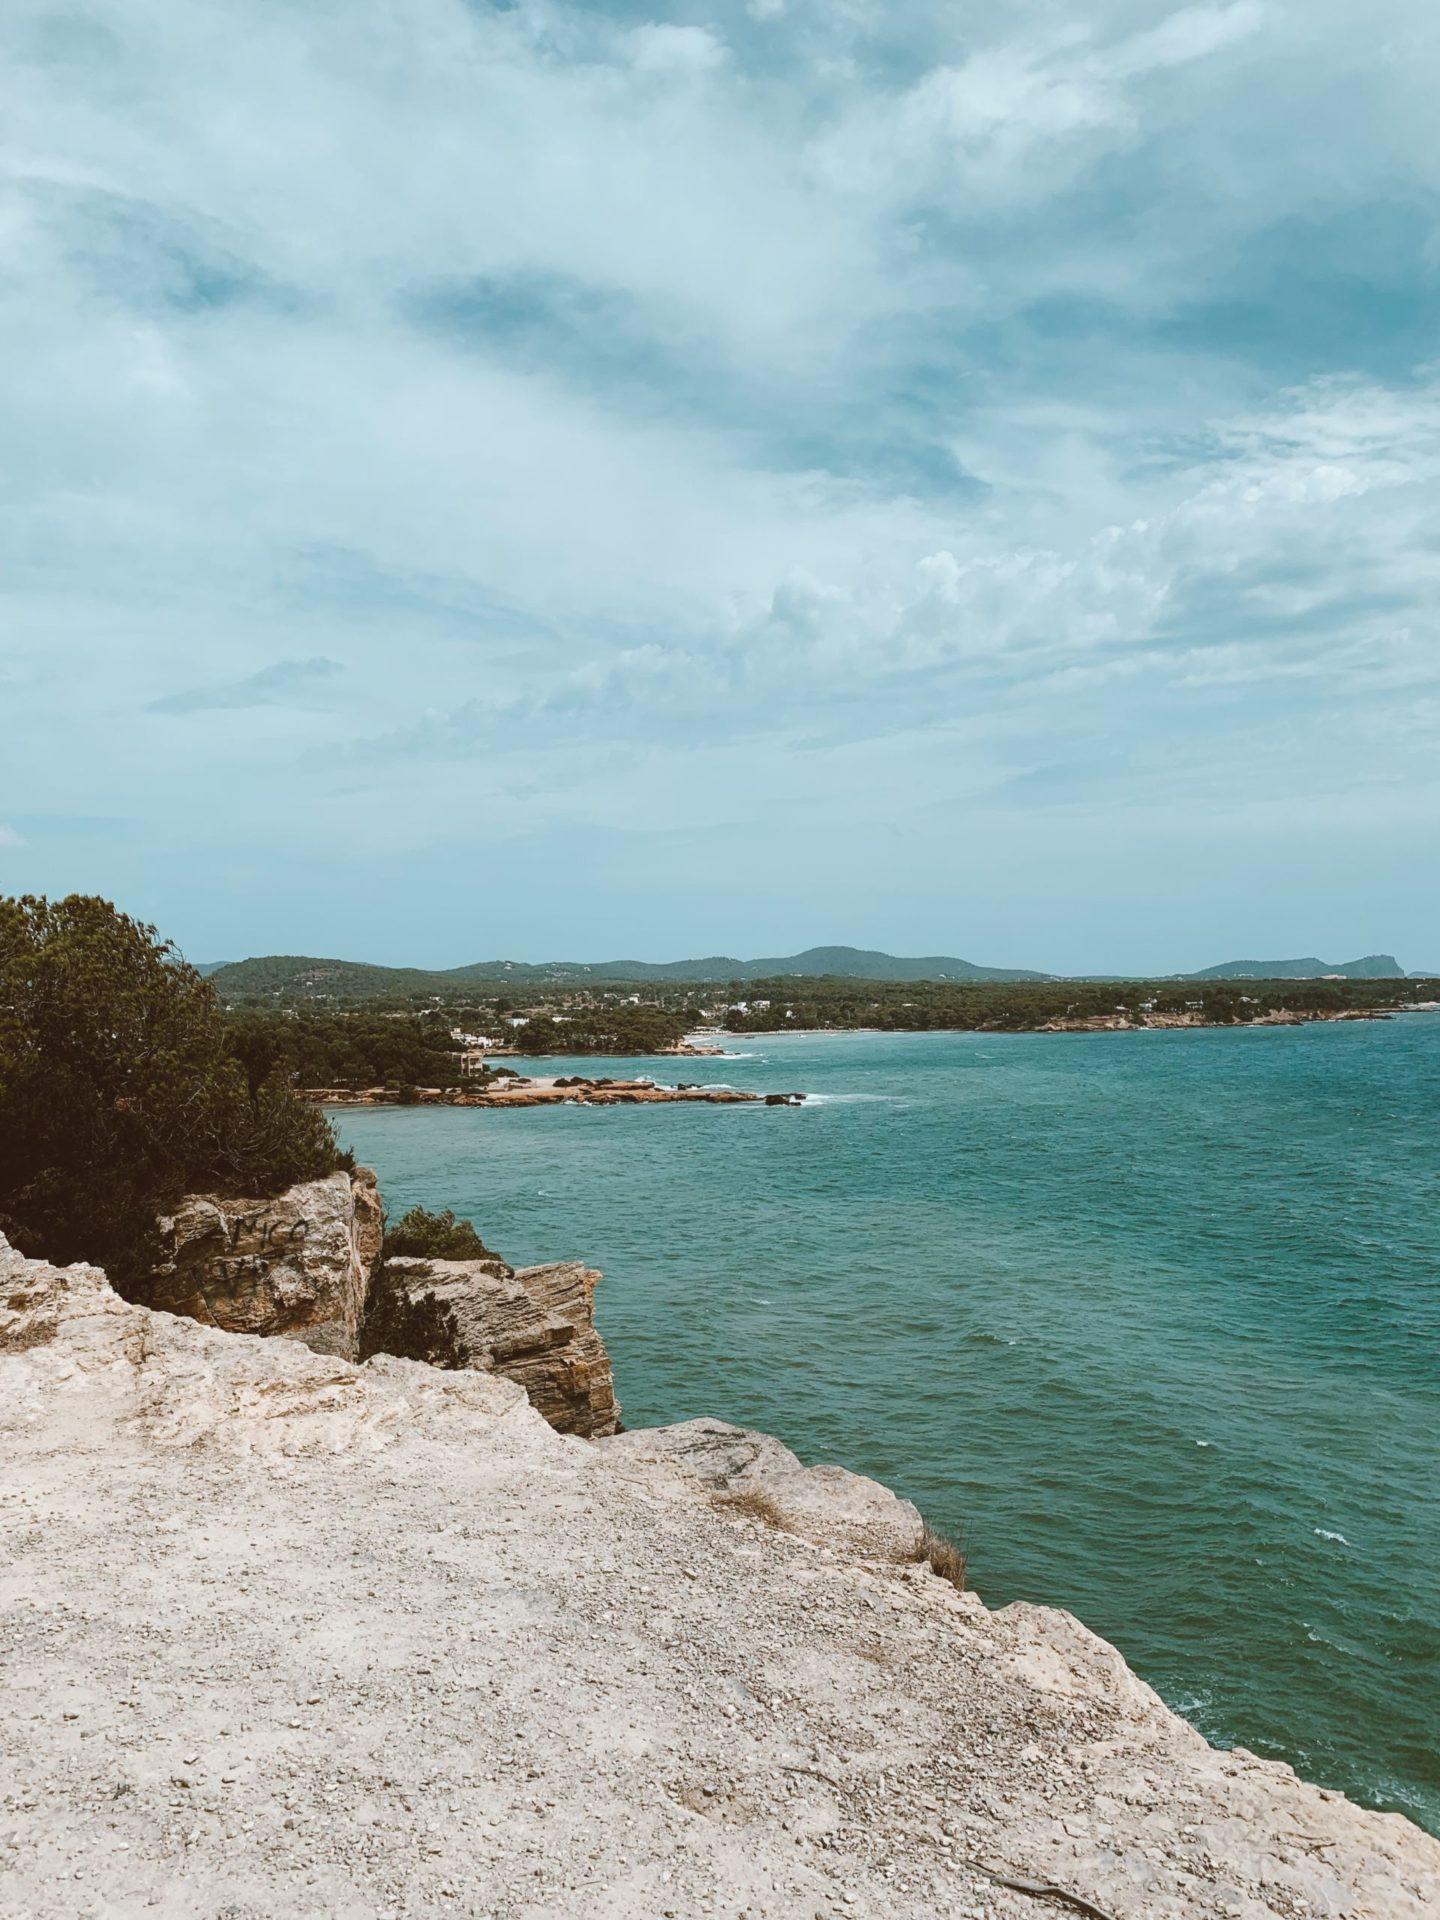 view of the ocean in Ibiza